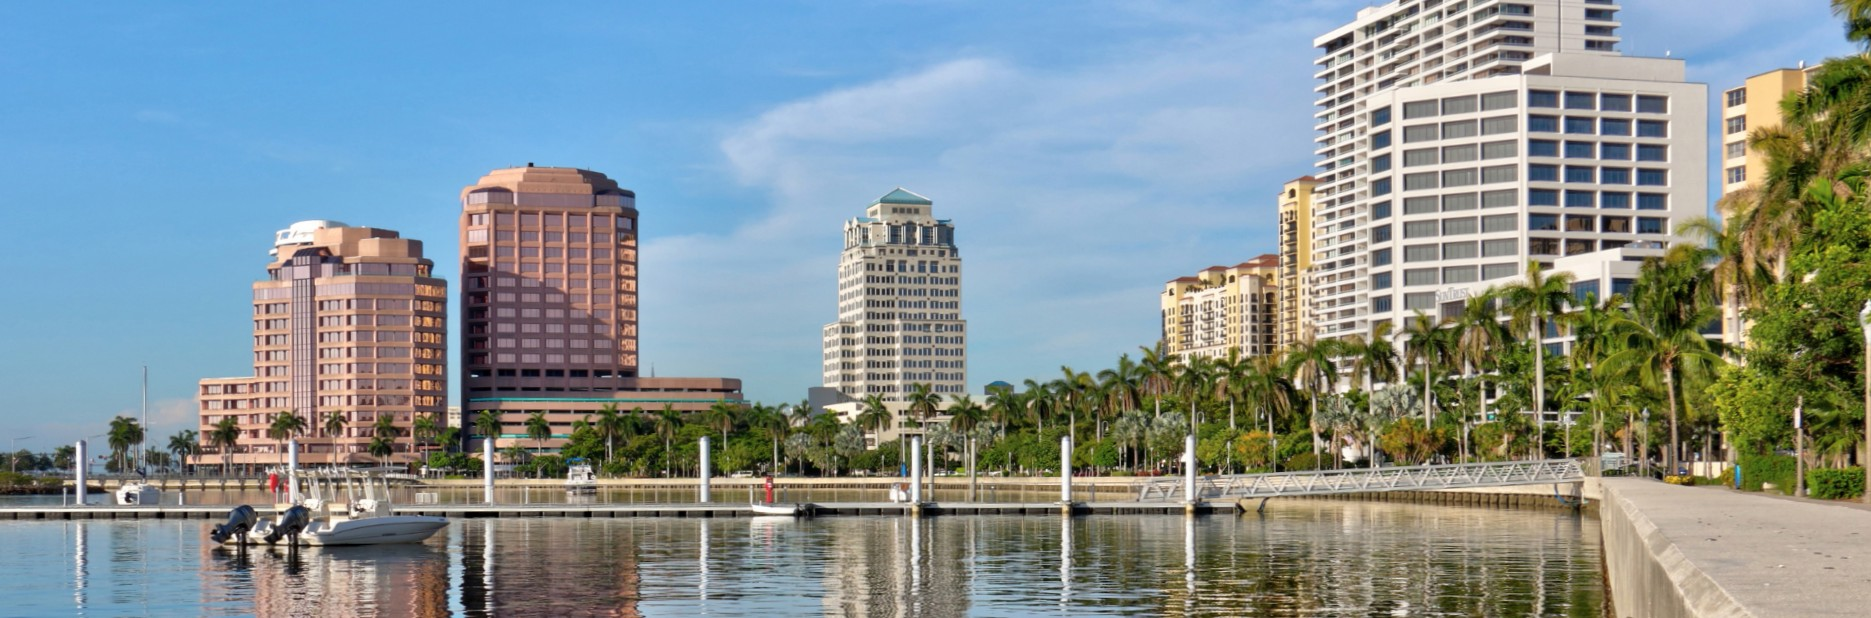 Downtown Waterfront in West Palm Beach